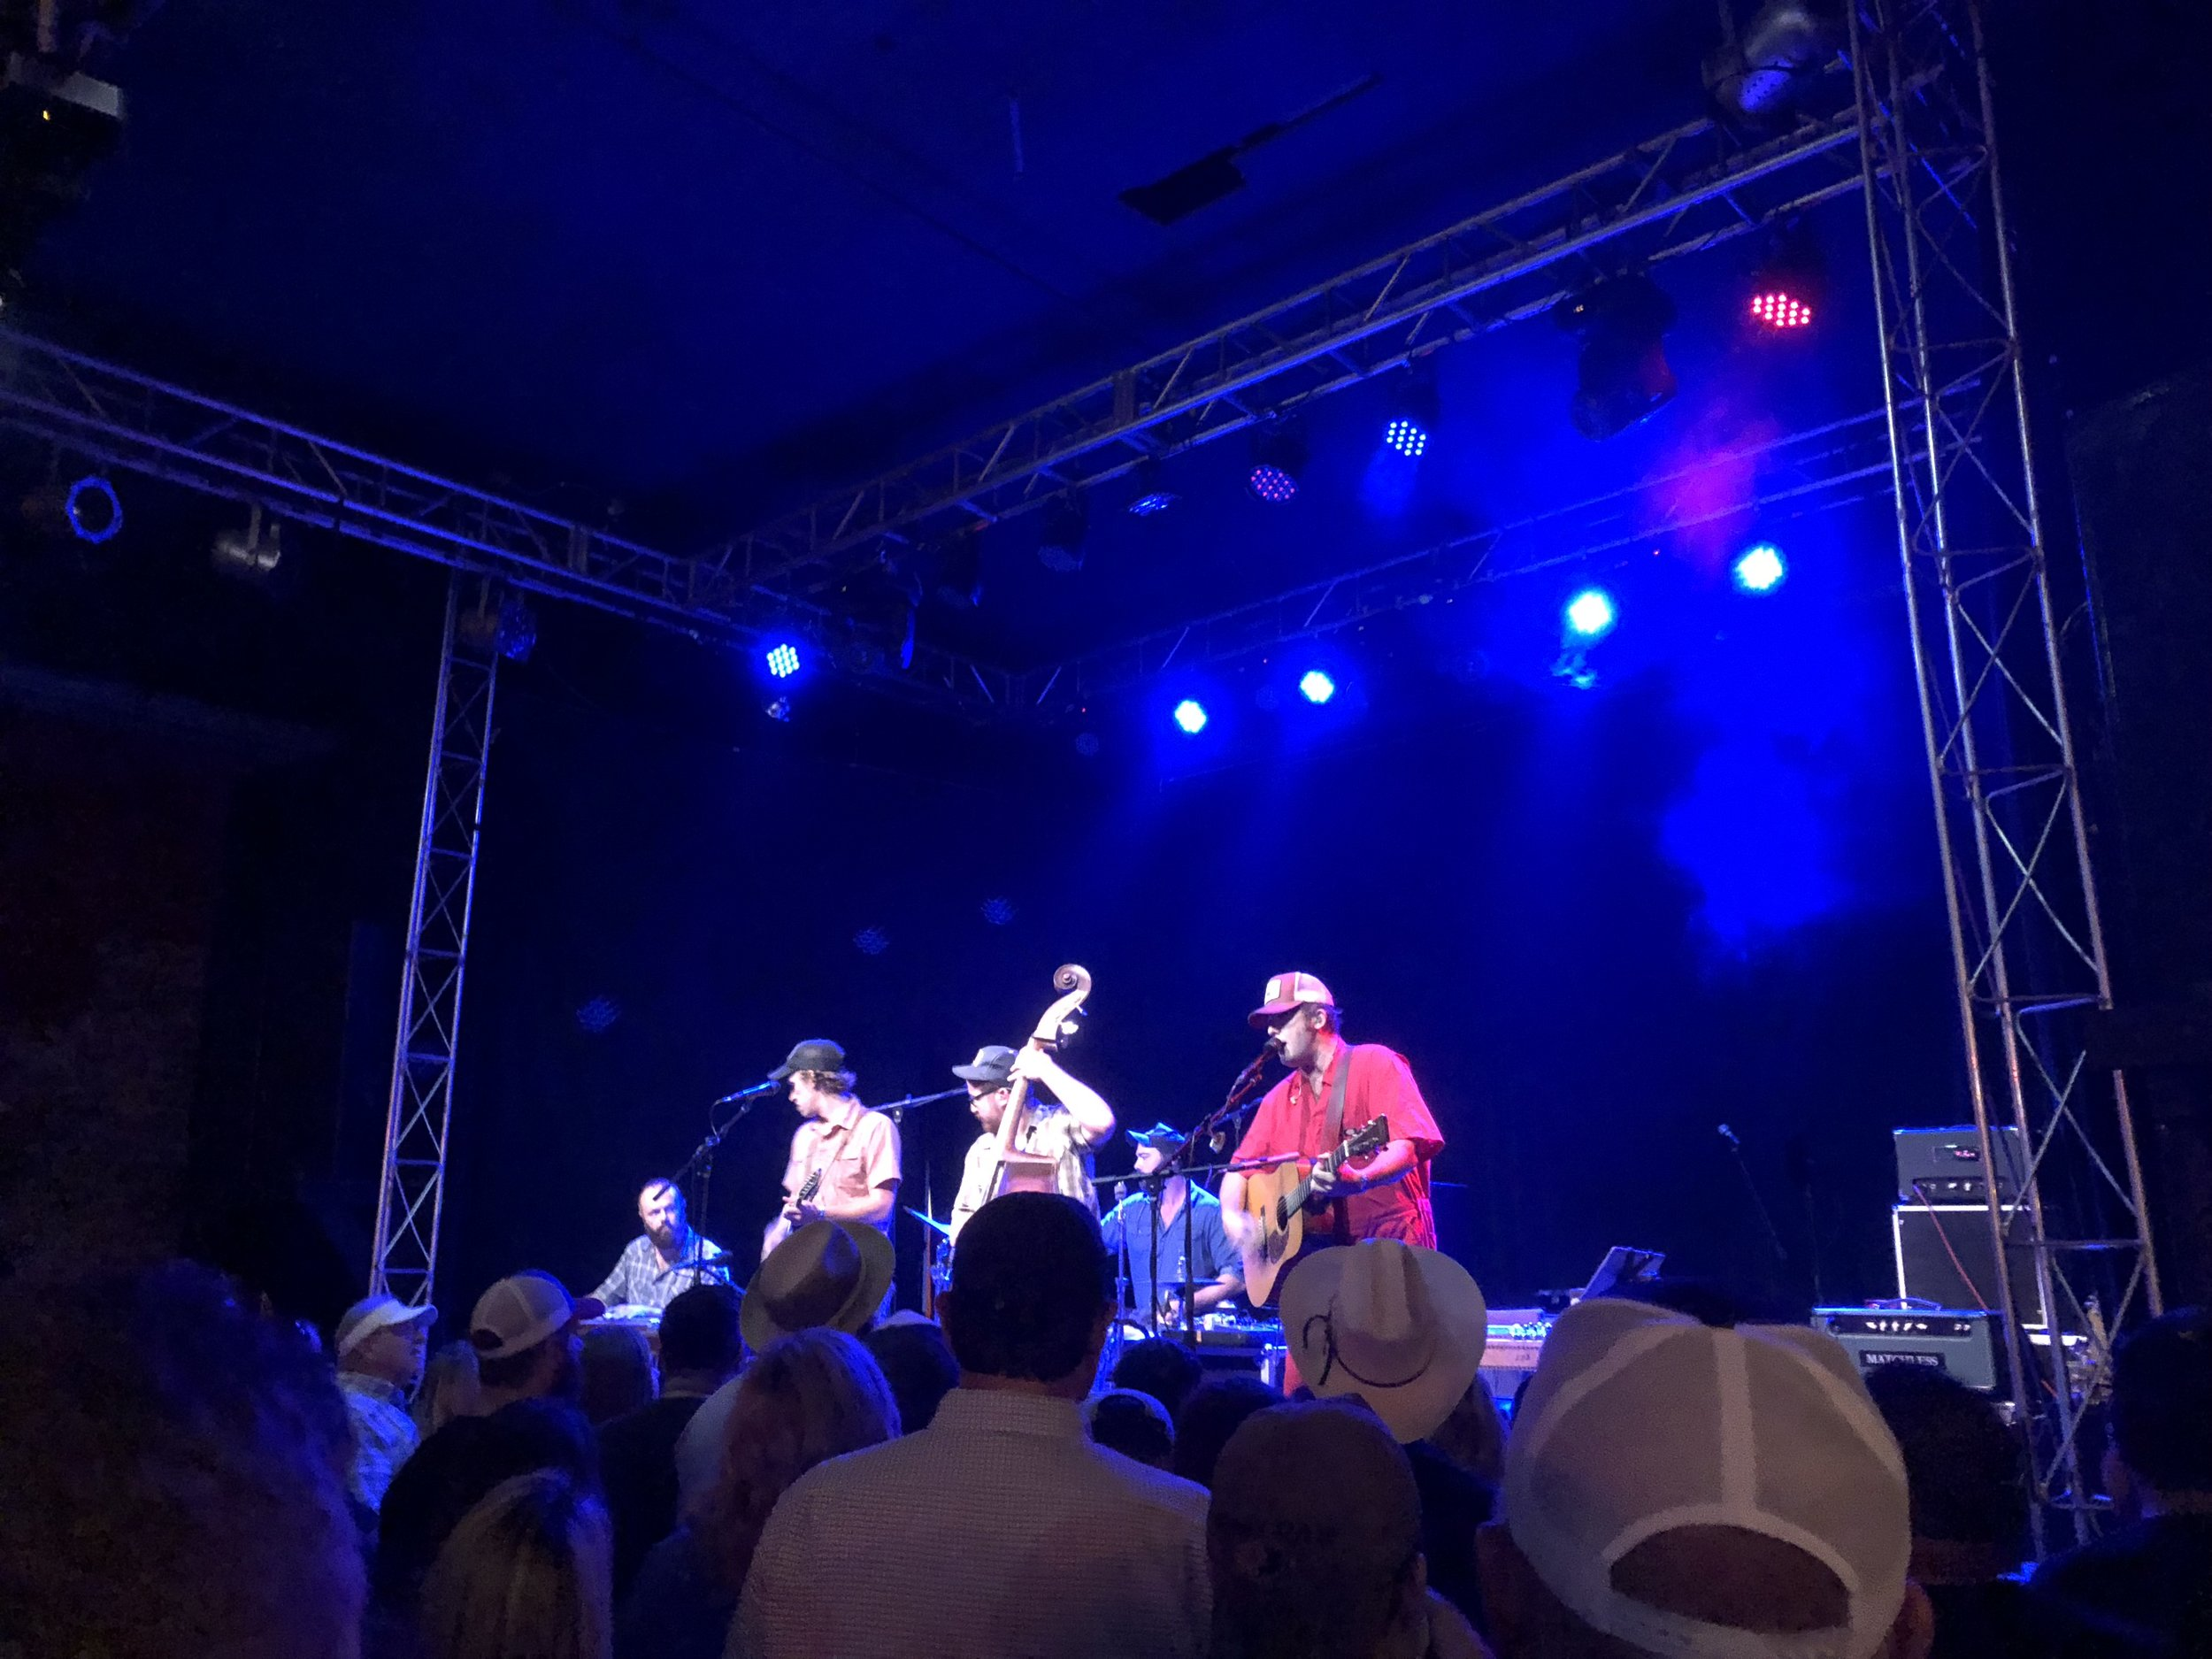 #8 town mountain - Headliners Music Hall - August 18, 2018The originality of this North-Carolina-based band fuses bluegrass and roots with a countrified sound, bringing a refreshing burst of energy. Seeing them was enthralling and captivating - a definite nod to tradition but carving their own musical pathway.